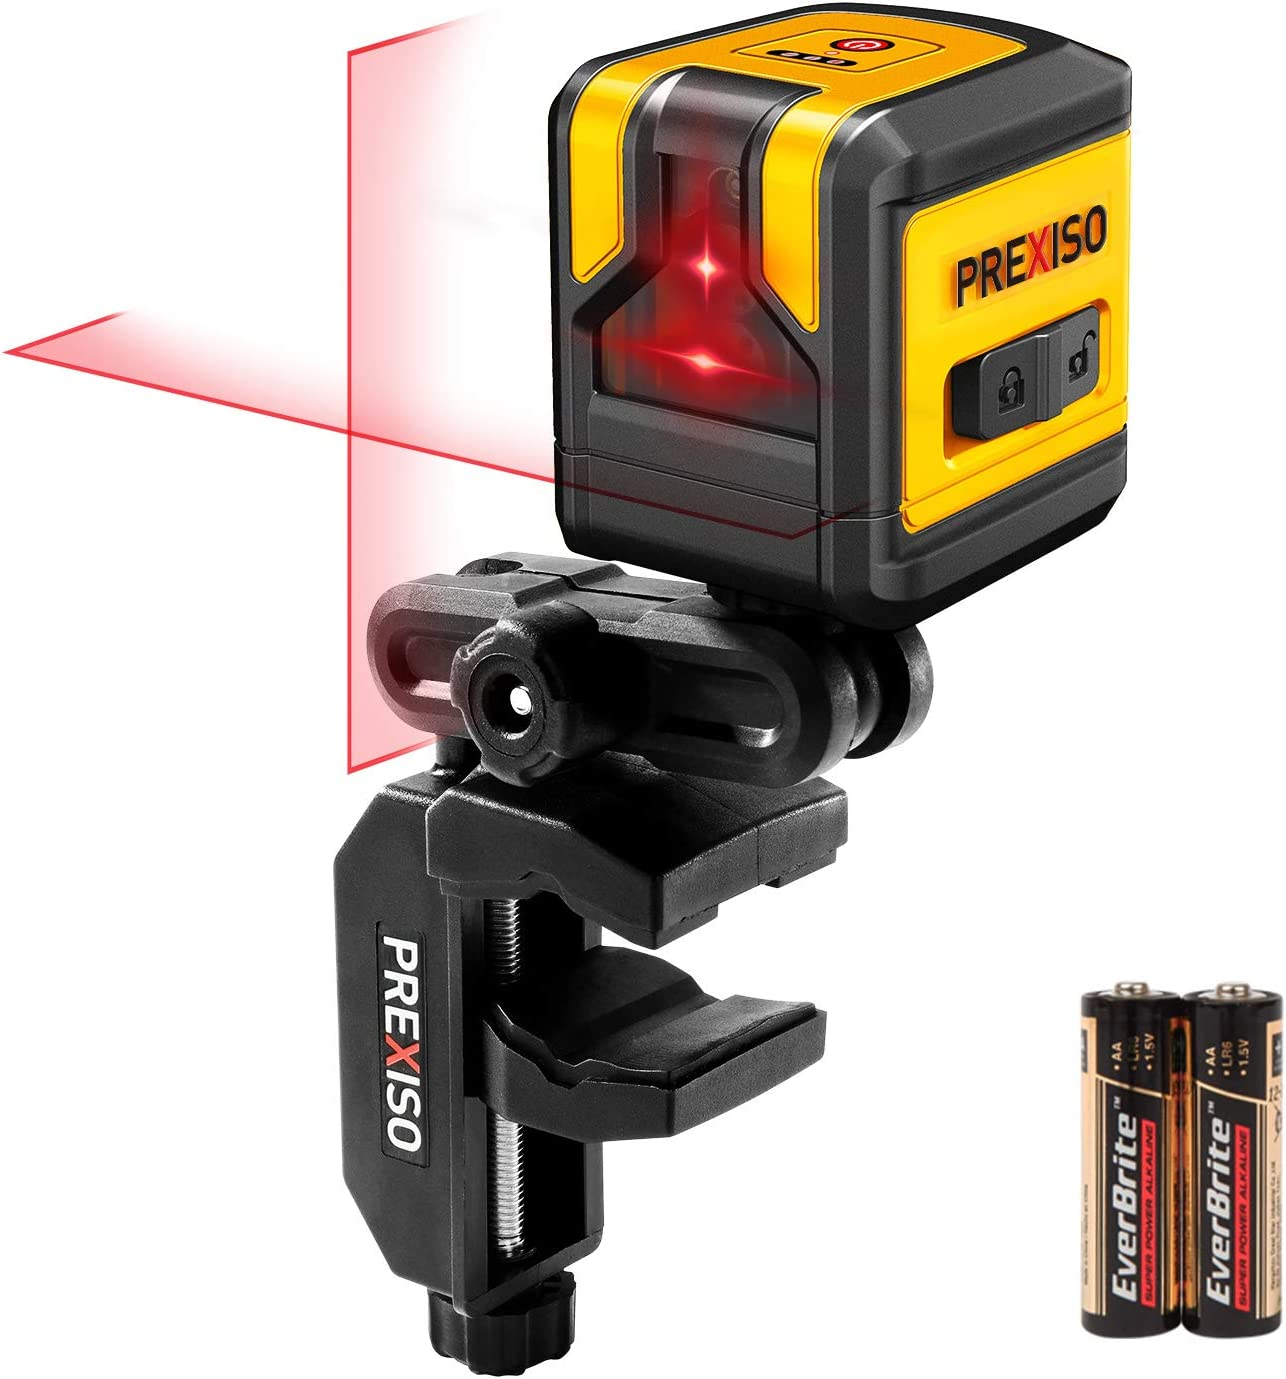 PREXISO 30FT NEW before selling ☆ Bargain Self Leveling Cross Switchable Line Vertical Laser